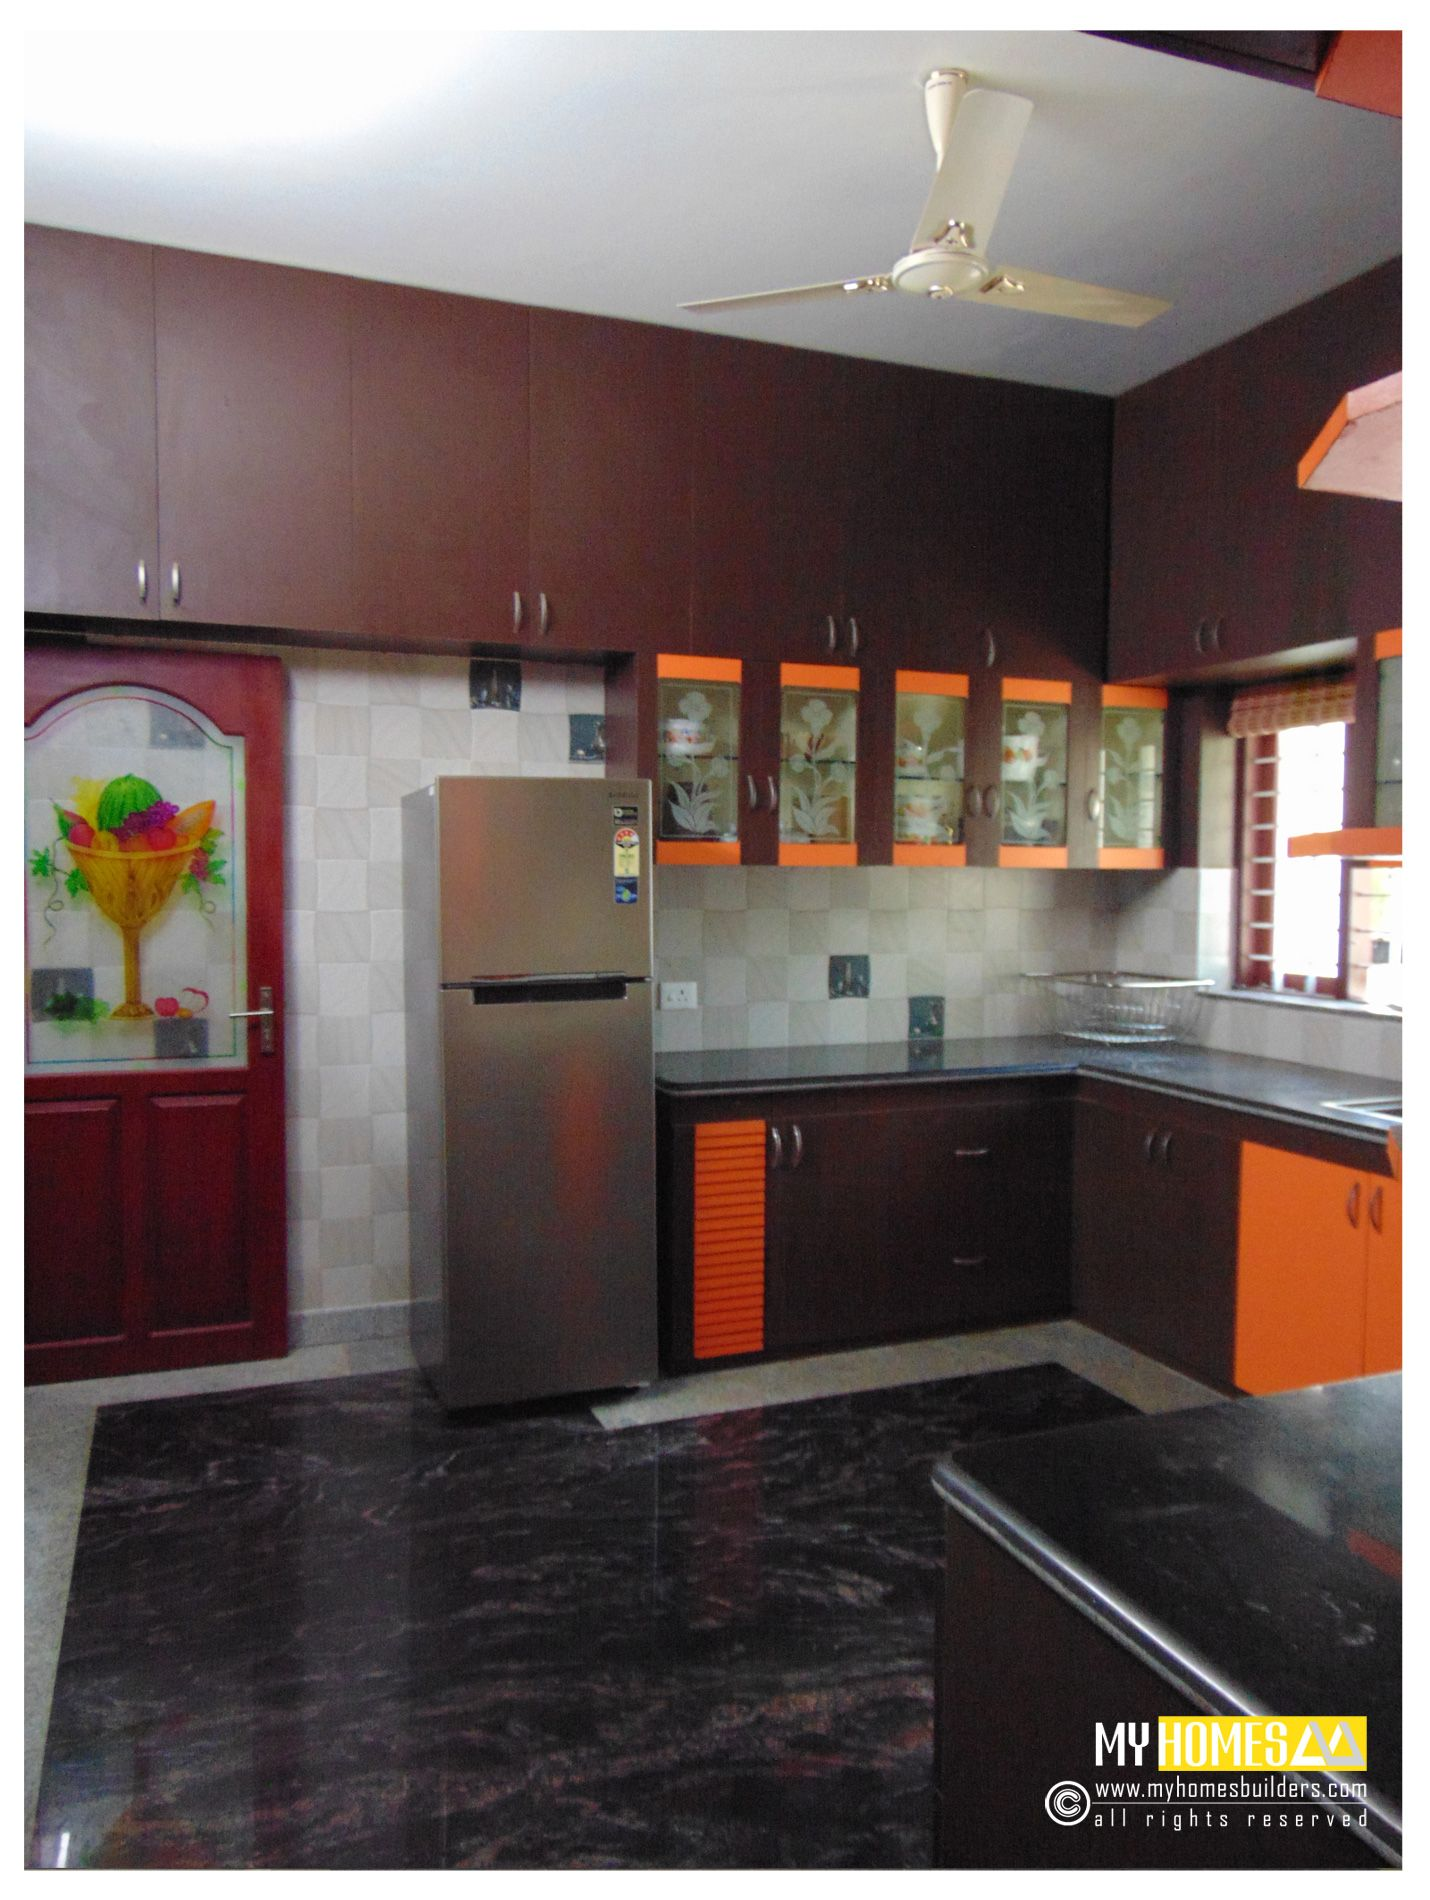 Kerala kitchen designs idea modular style for house india home design amazing architecture magazine best free  inspiration also my designers builders myhomedesigners on pinterest rh